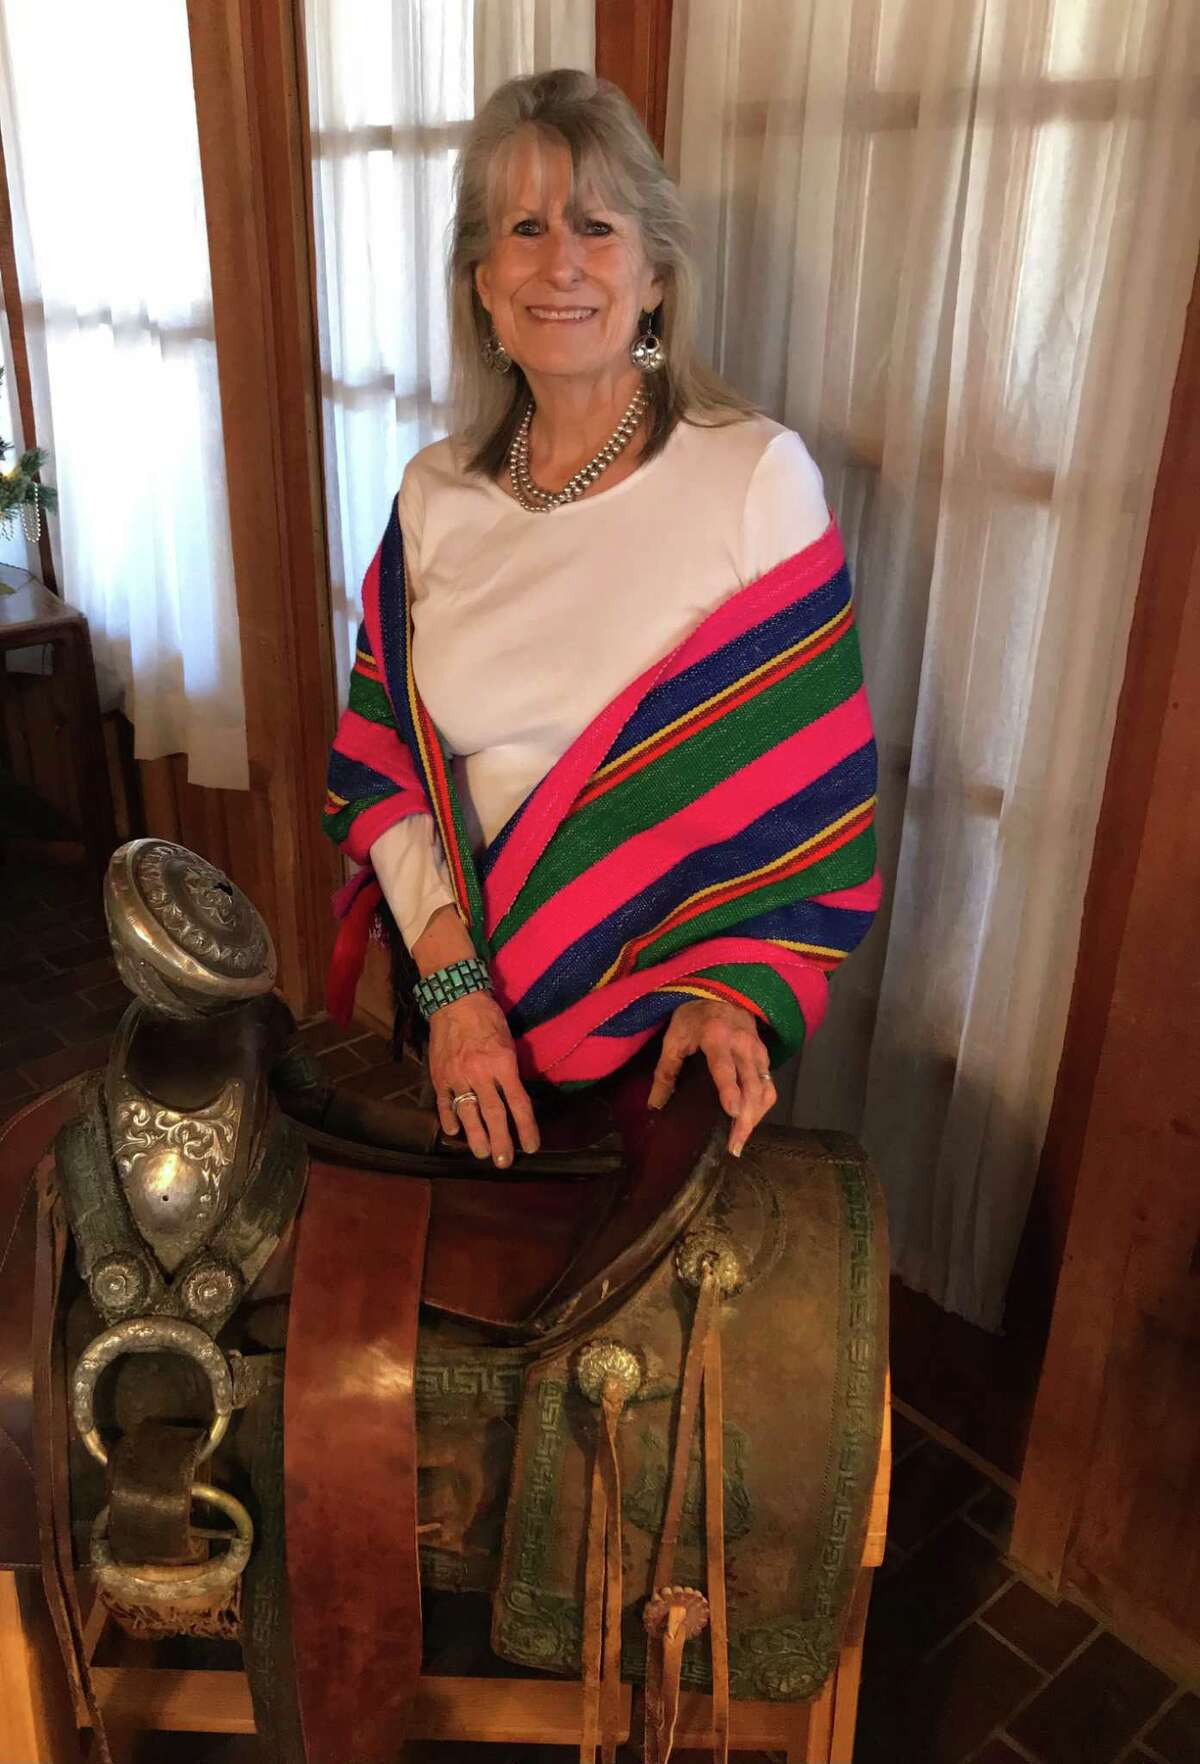 Wanda Garner Cash poses with Pancho Villa's saddle, which for many years resided in the Cadillac Bar dining room in Nuevo Laredo. Today it's in Cash's Hill Country home.